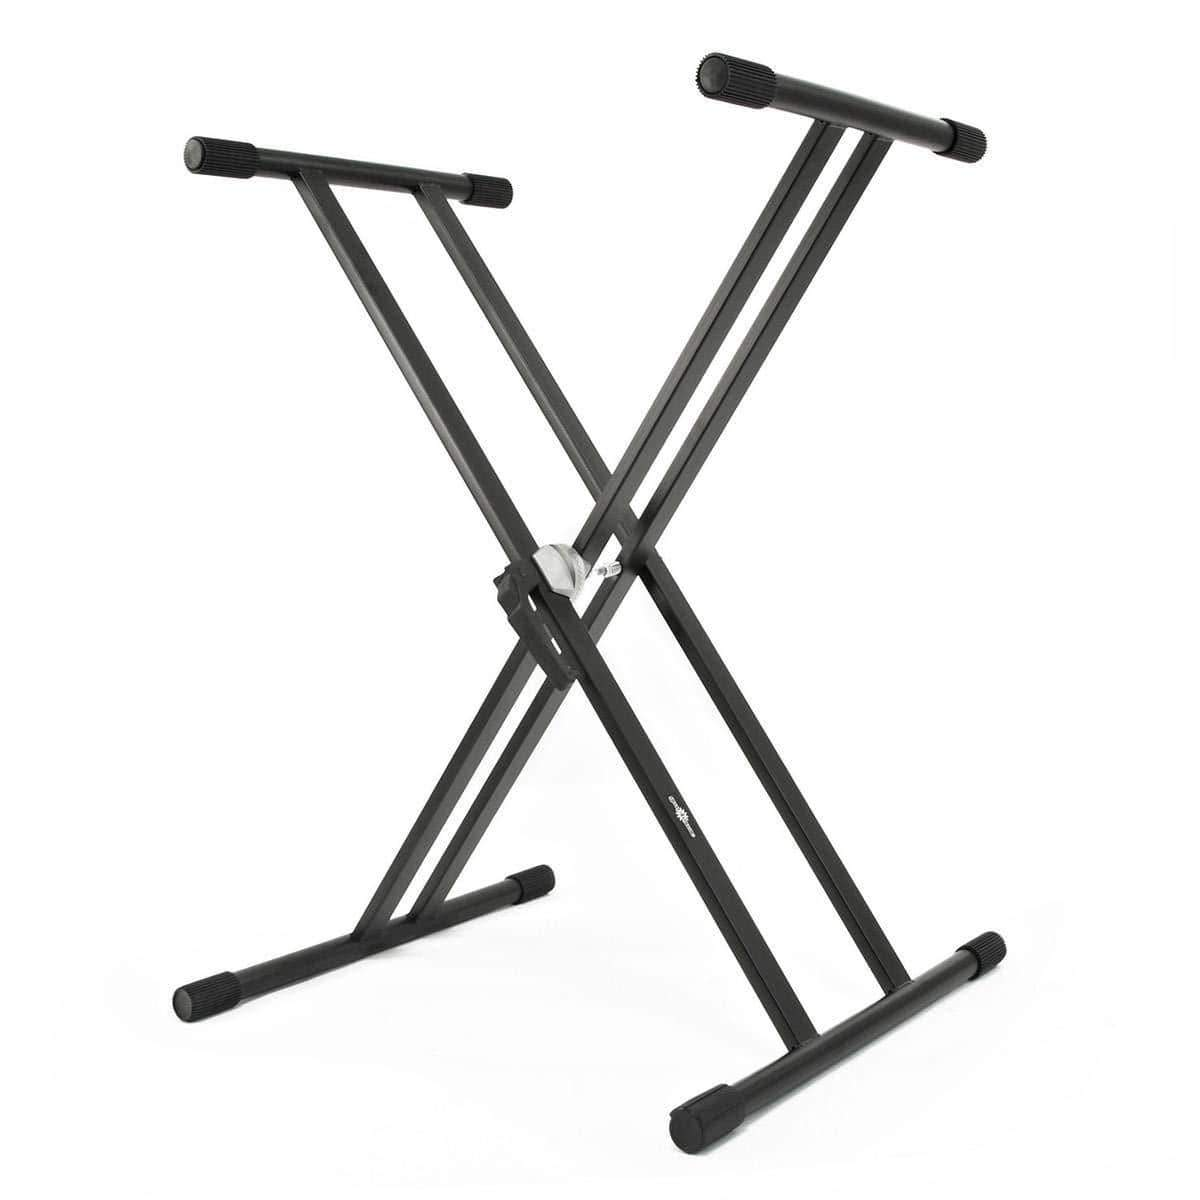 Tovaste Keyboard Stand/Stool Tovaste KS06 Height Adjustable Keyboard Stand - 61 to 88 Key